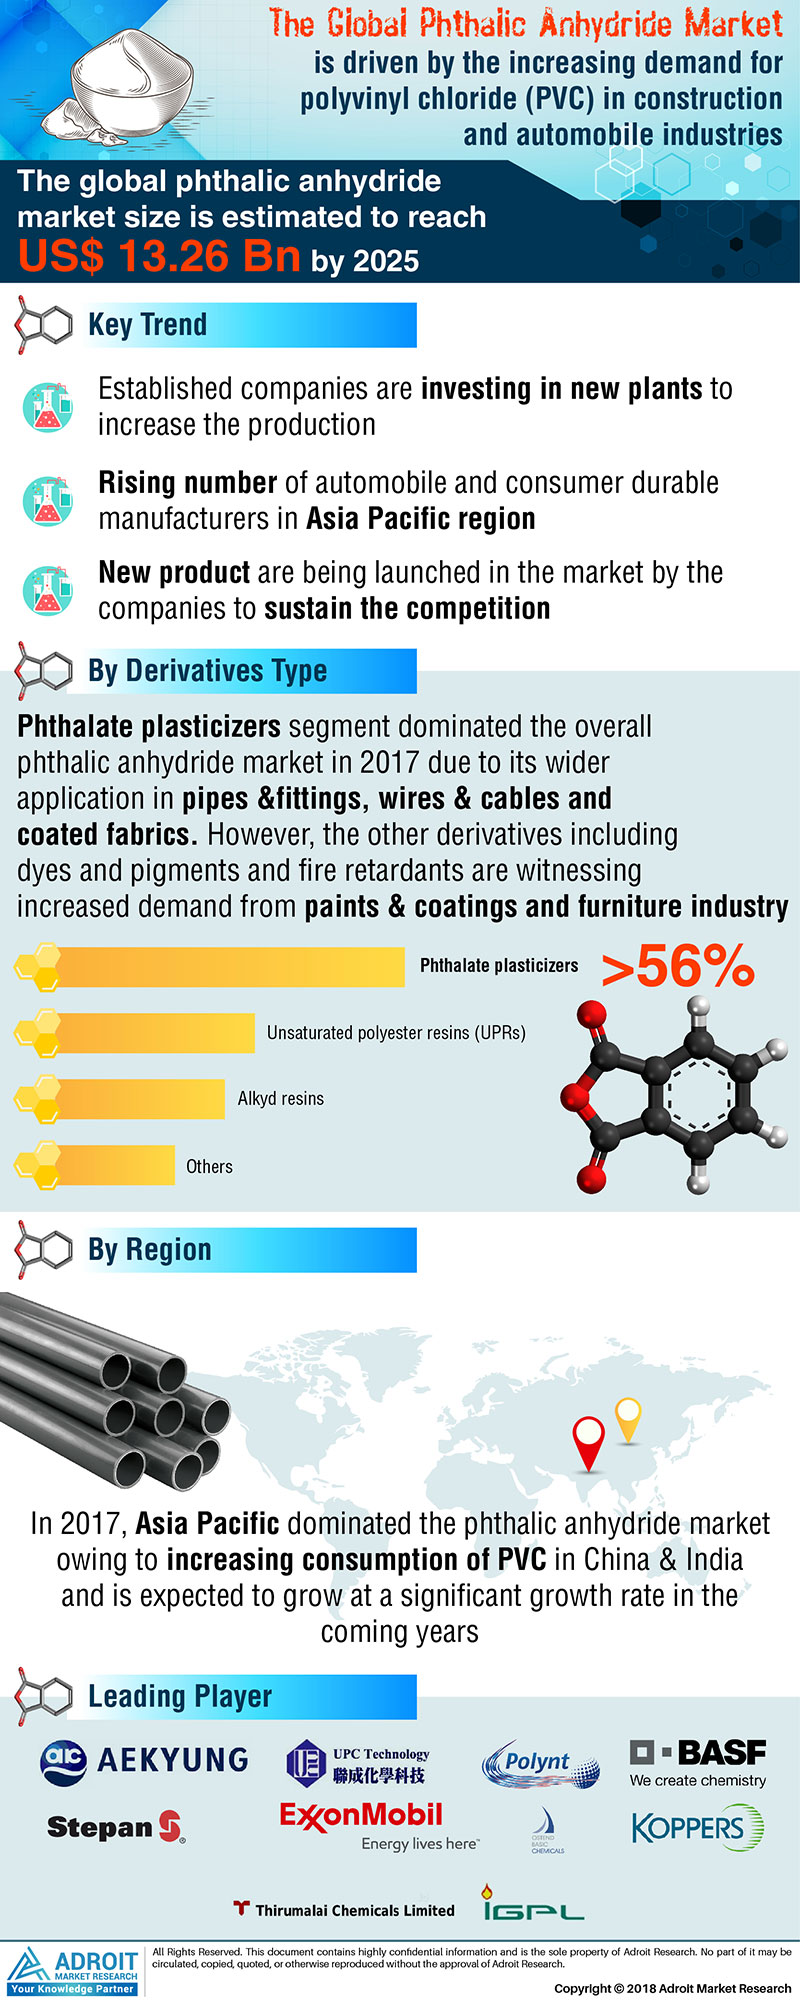 Phthalic Anhydride Market Size by Derivatives, Region and Forecast 2018 to 2025